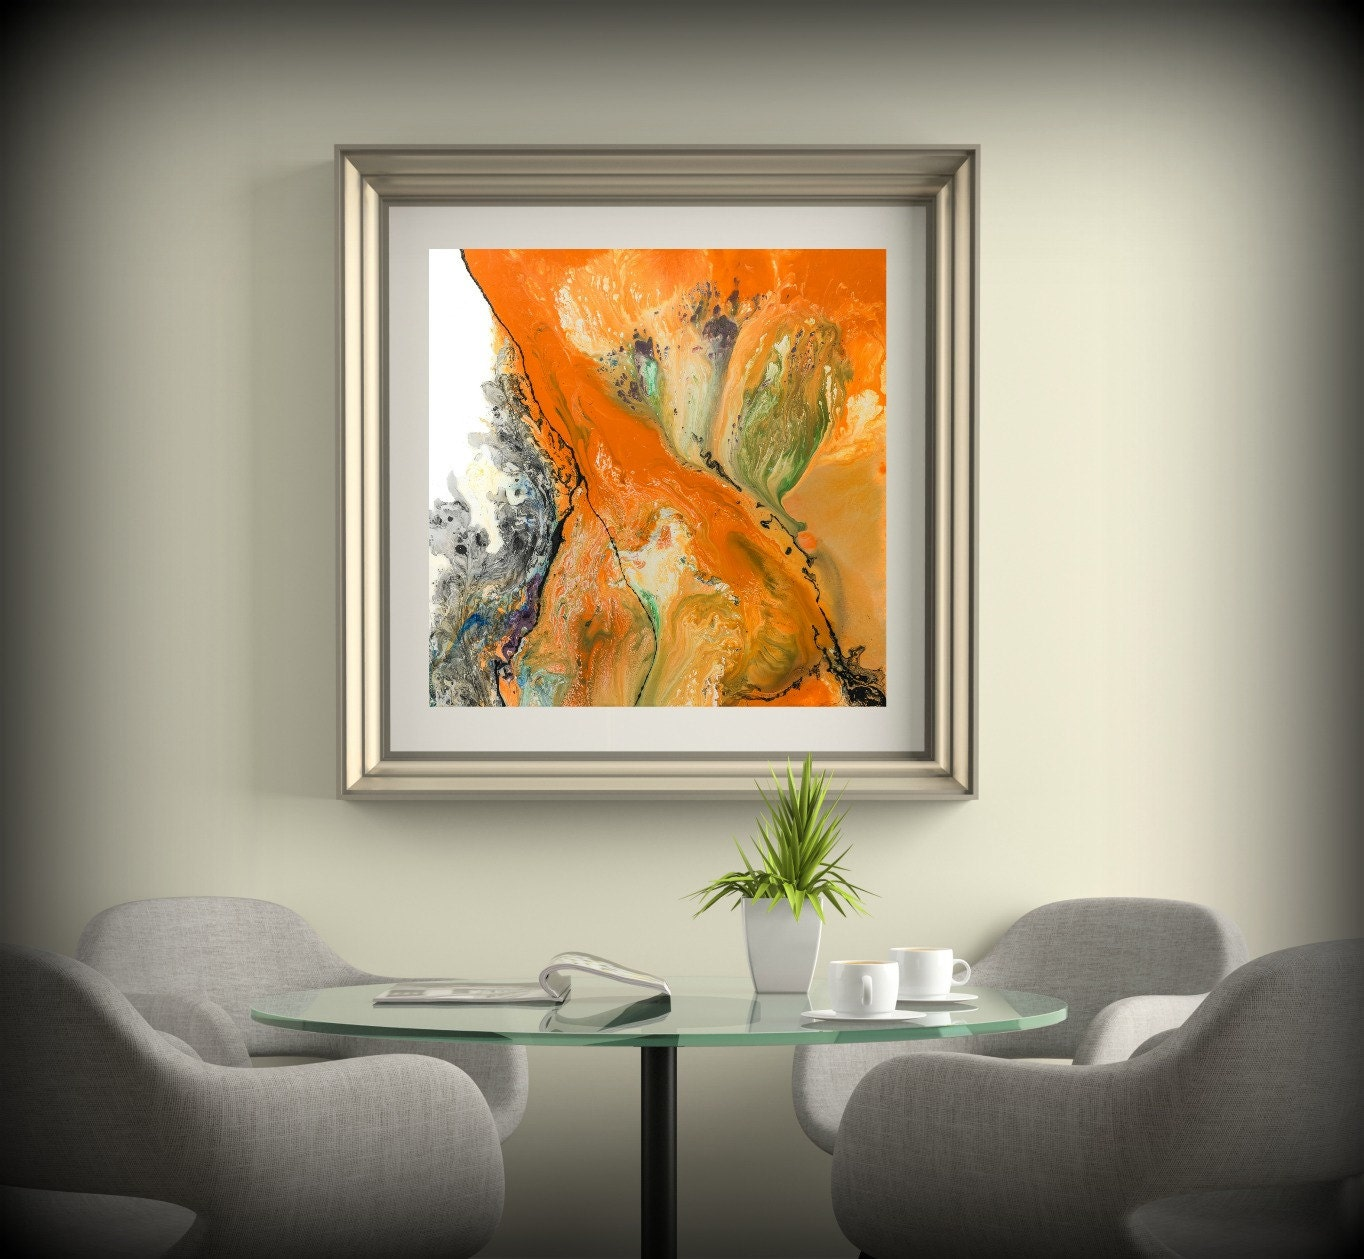 wall decor fall all into living walls styles orange room for accents